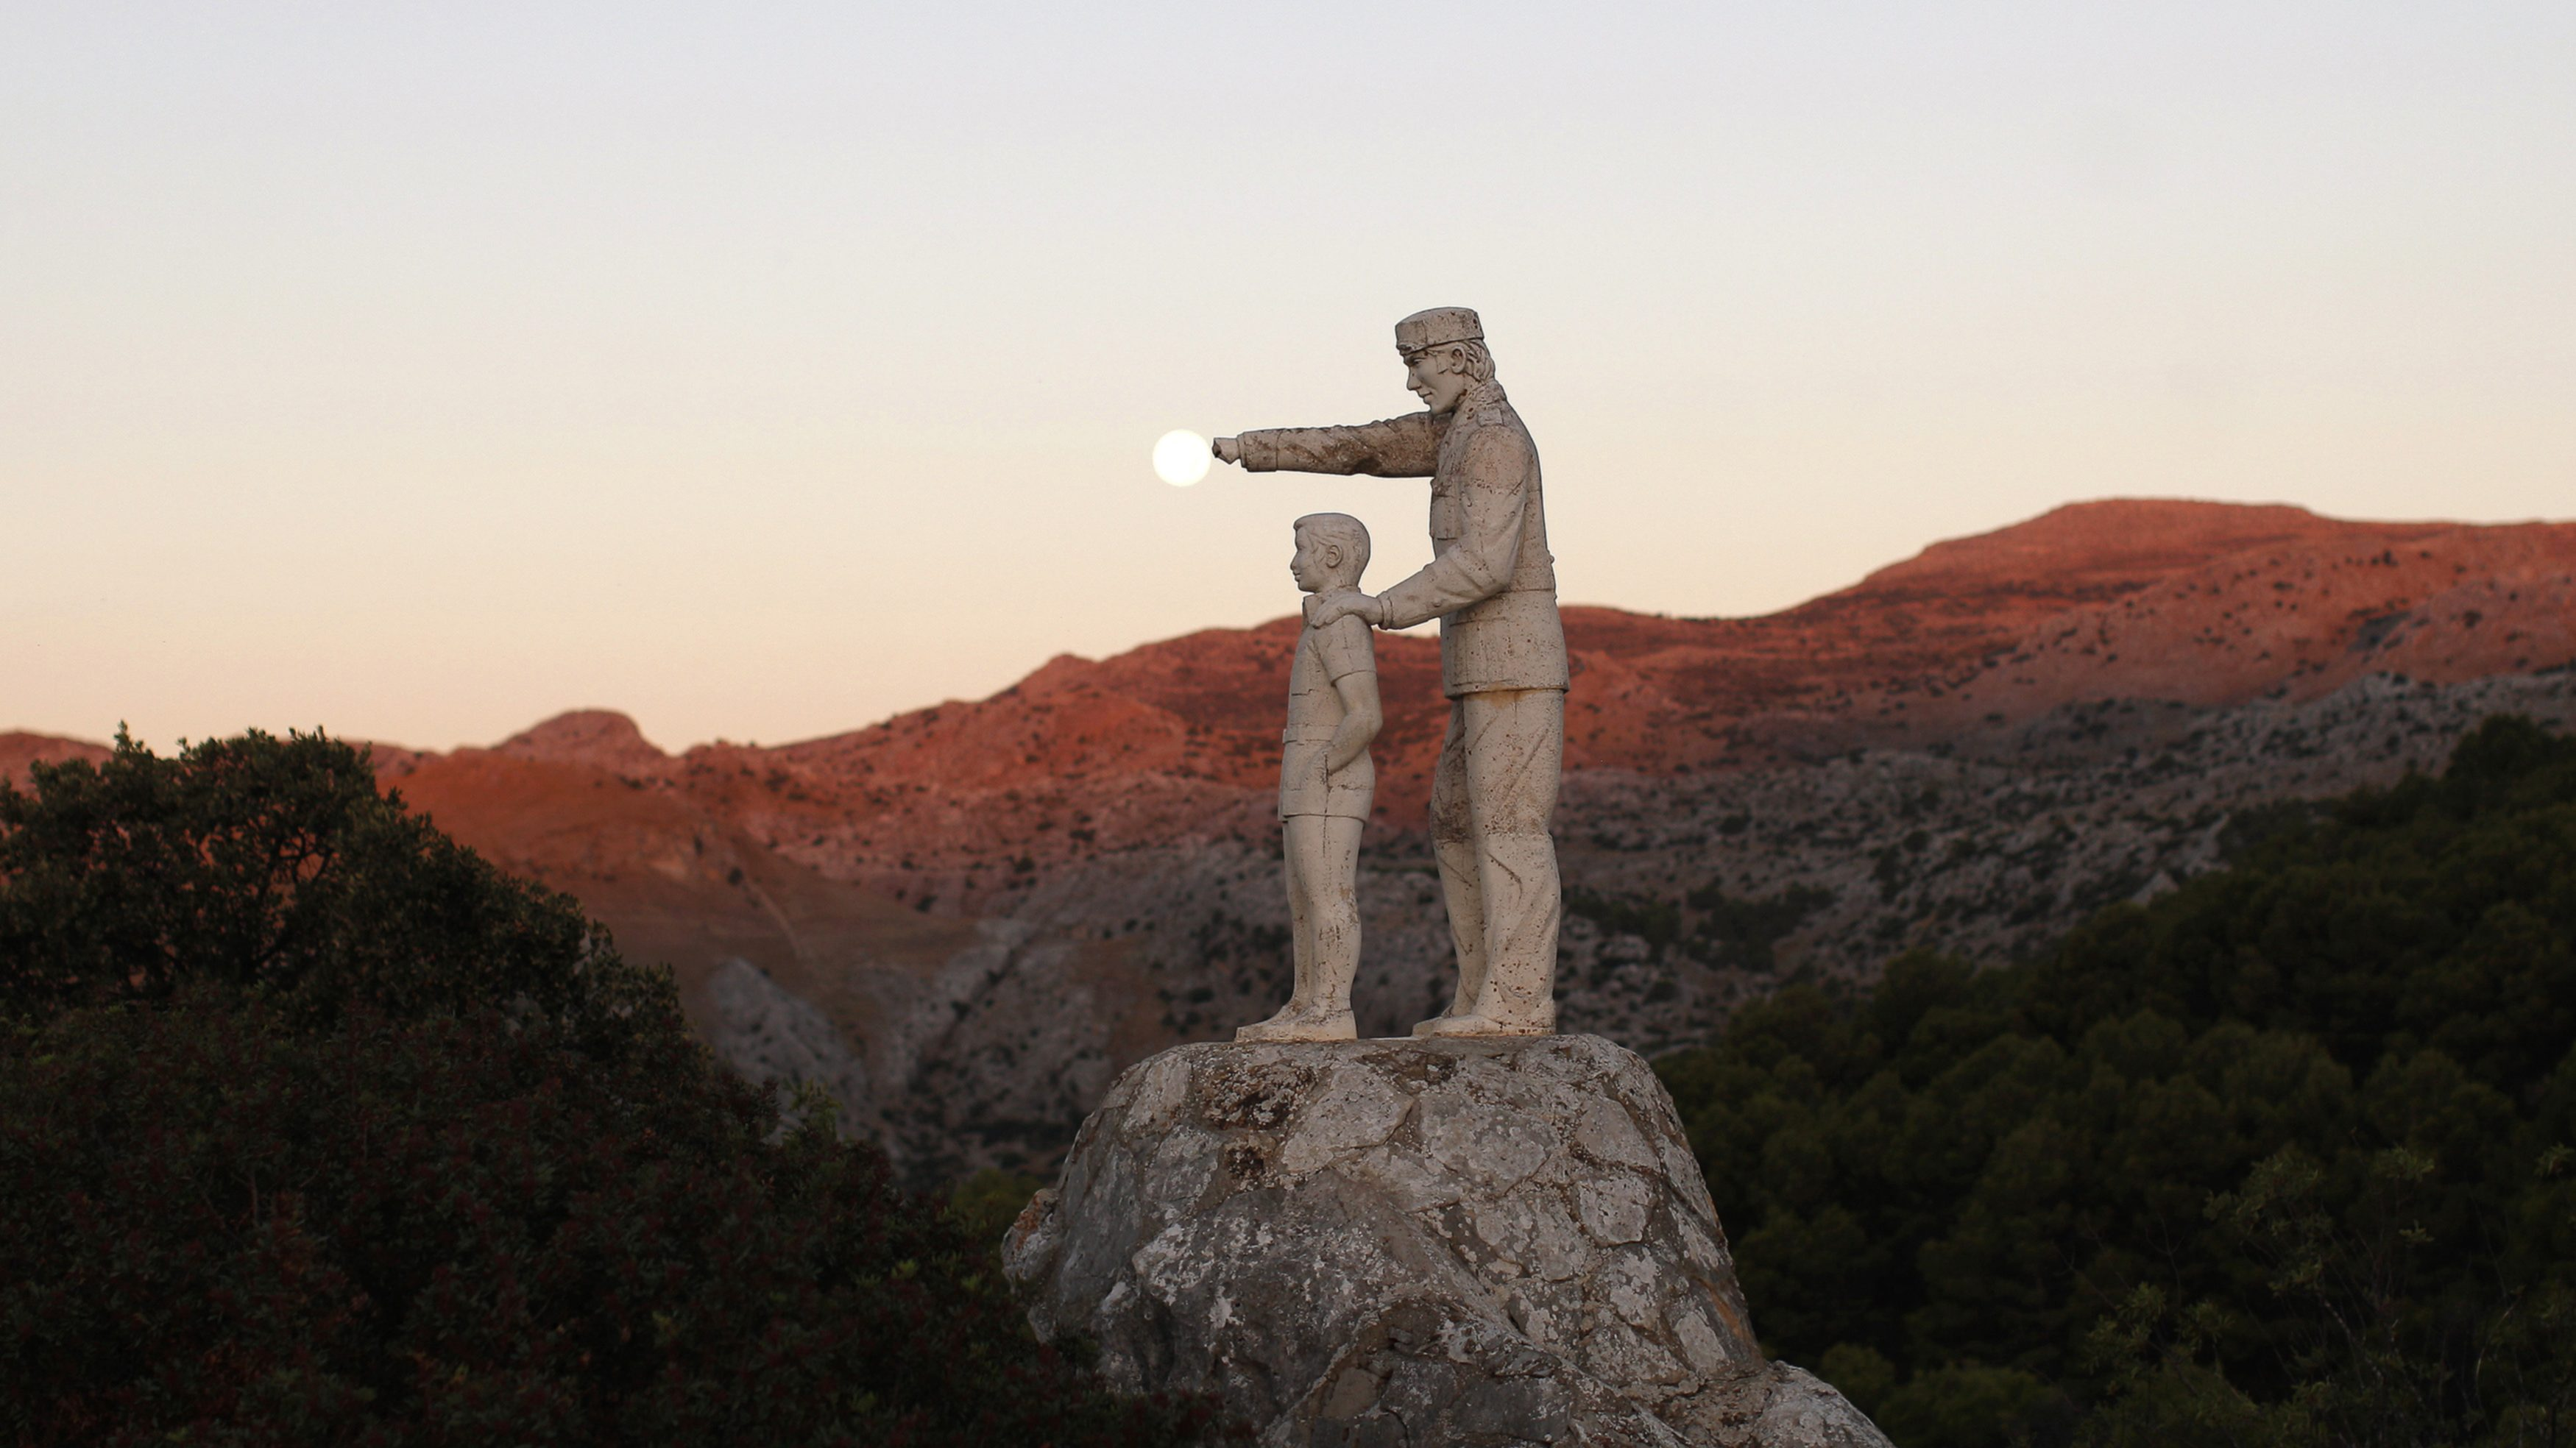 A view of statues of a man and a boy, a monument dedicated to forest rangers, as the supermoon sets over the horizon at dawn at the Sierra de las Nieves (Mountain range of Snows) nature park and biosphere reserve between El Burgo and Ronda, near Malaga, southern Spain August 11, 2014. Occurring when a full moon or new moon coincides with the closest approach the moon makes to Earth, the supermoon results in a larger-than-usual appearance of the lunar disk. REUTERS/Jon Nazca (SPAIN - Tags: ENVIRONMENT TPX IMAGES OF THE DAY TRAVEL) - RTR41XRJ